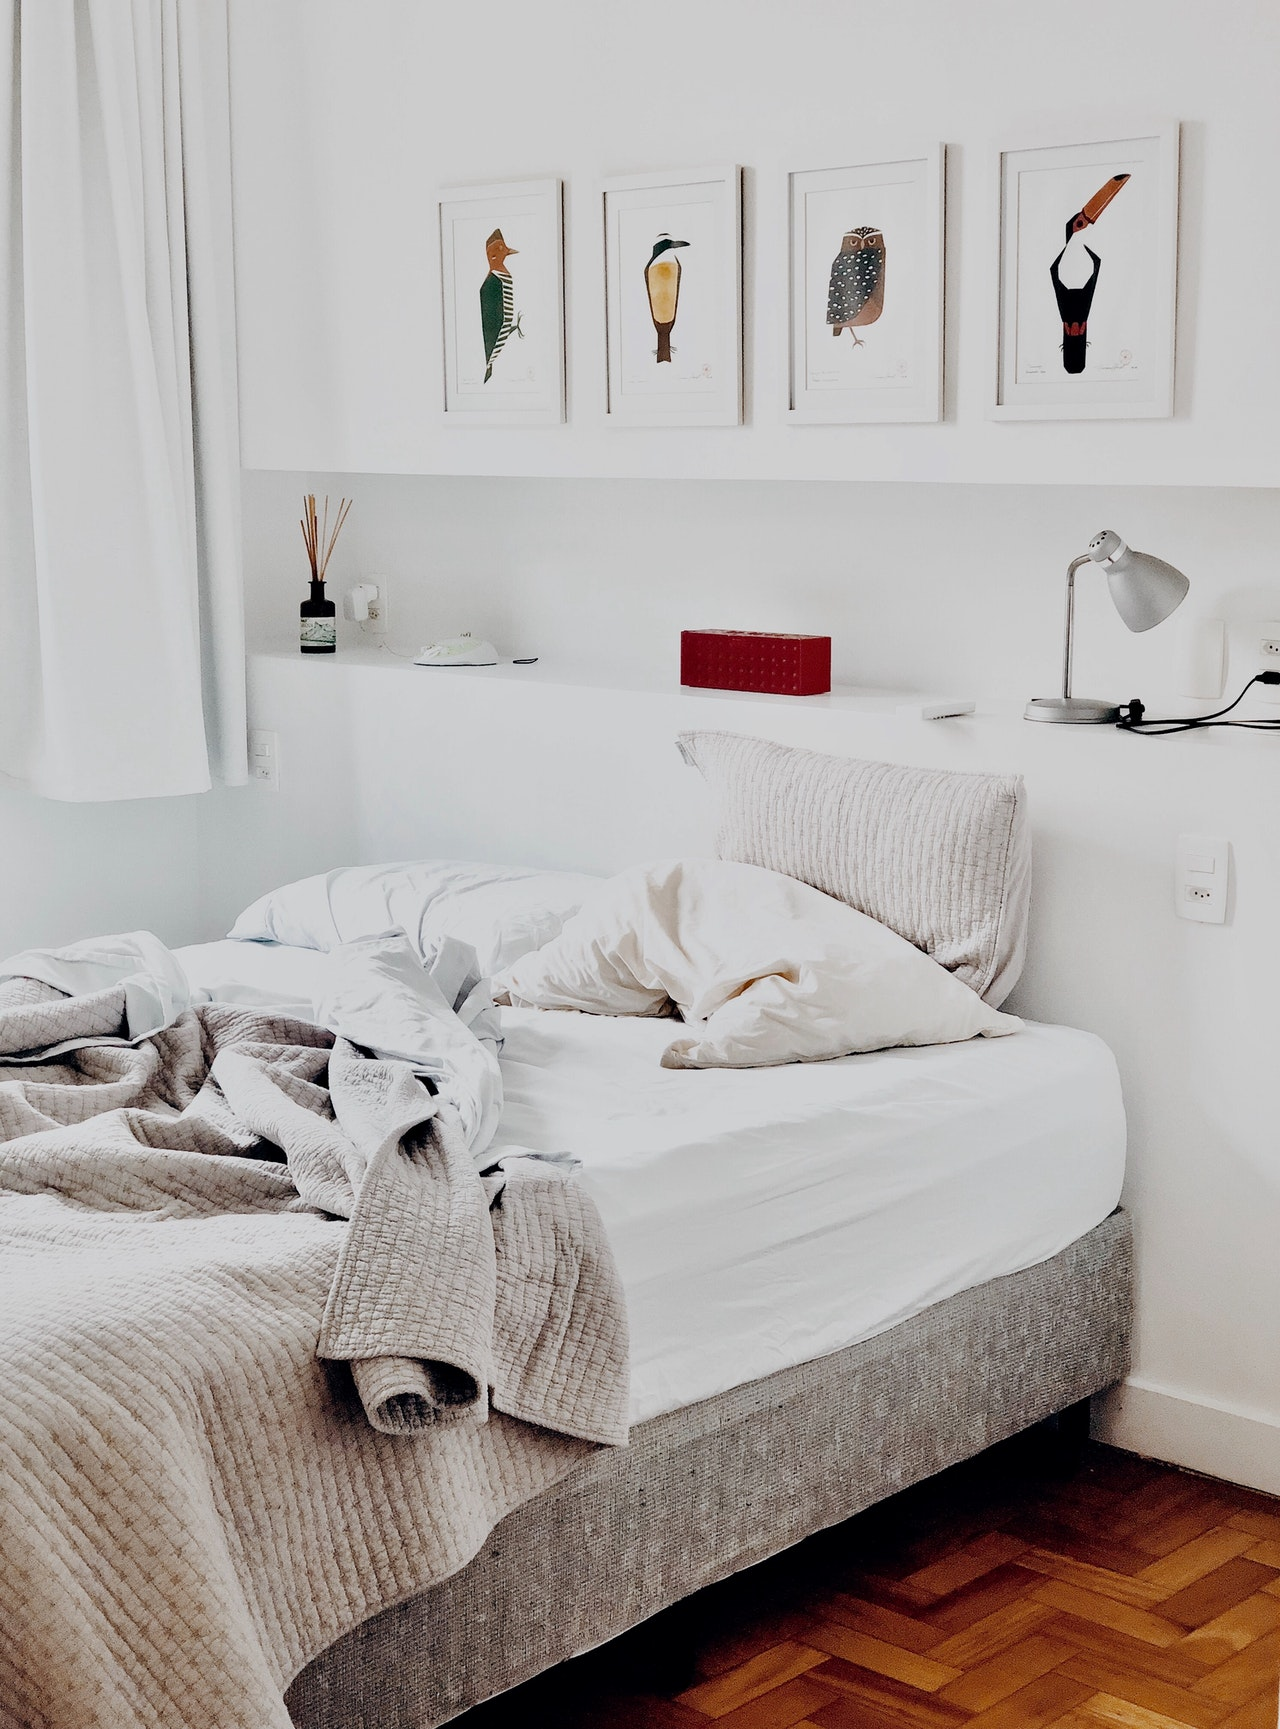 Beautiful Ways to Keep Your Home Stylish and Cool in the Heat